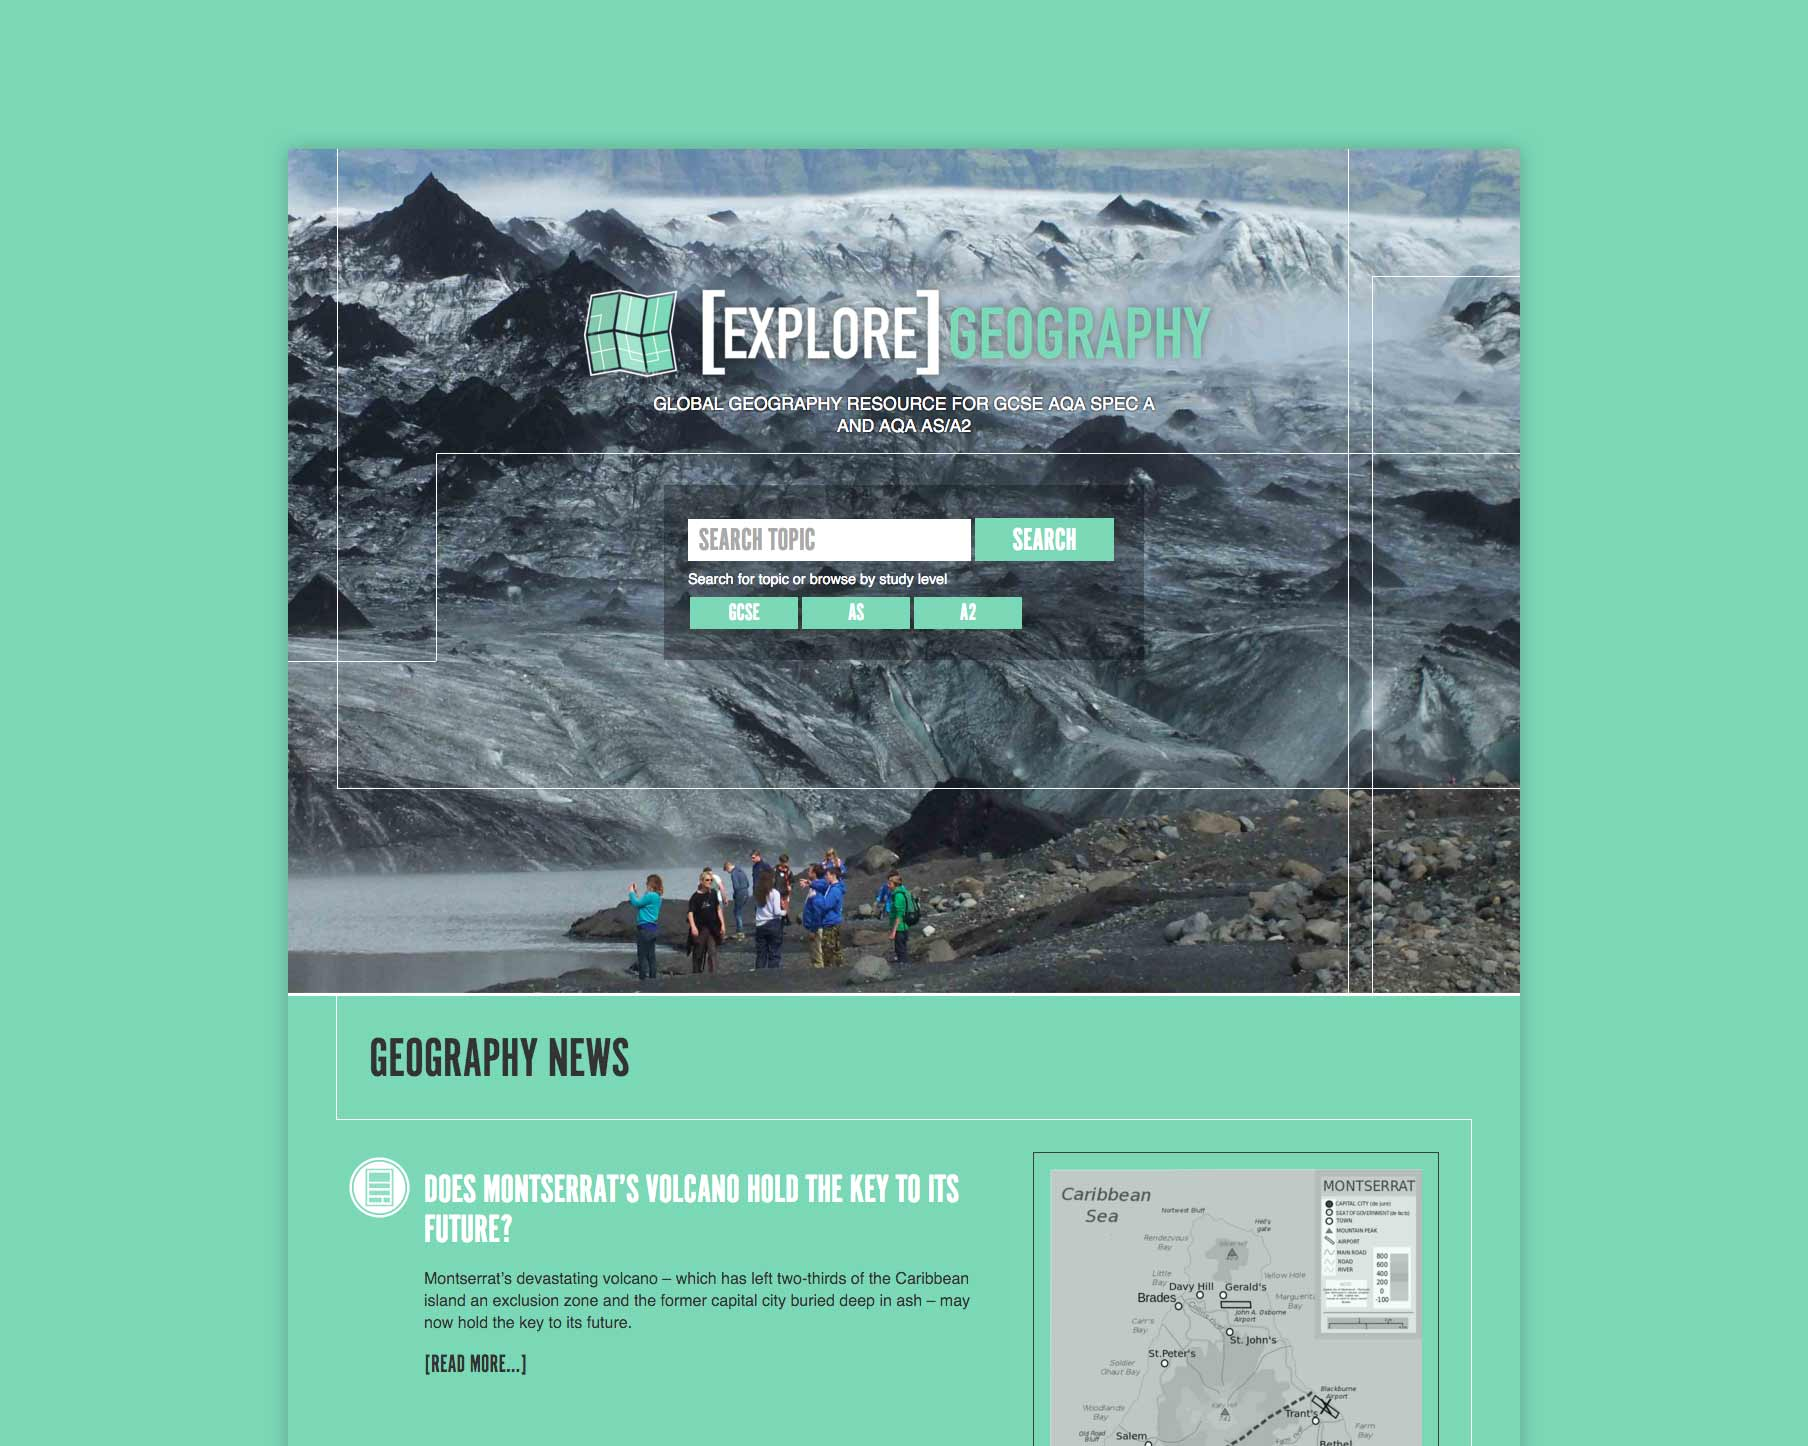 Explore Geography website design by Geoff Muskett